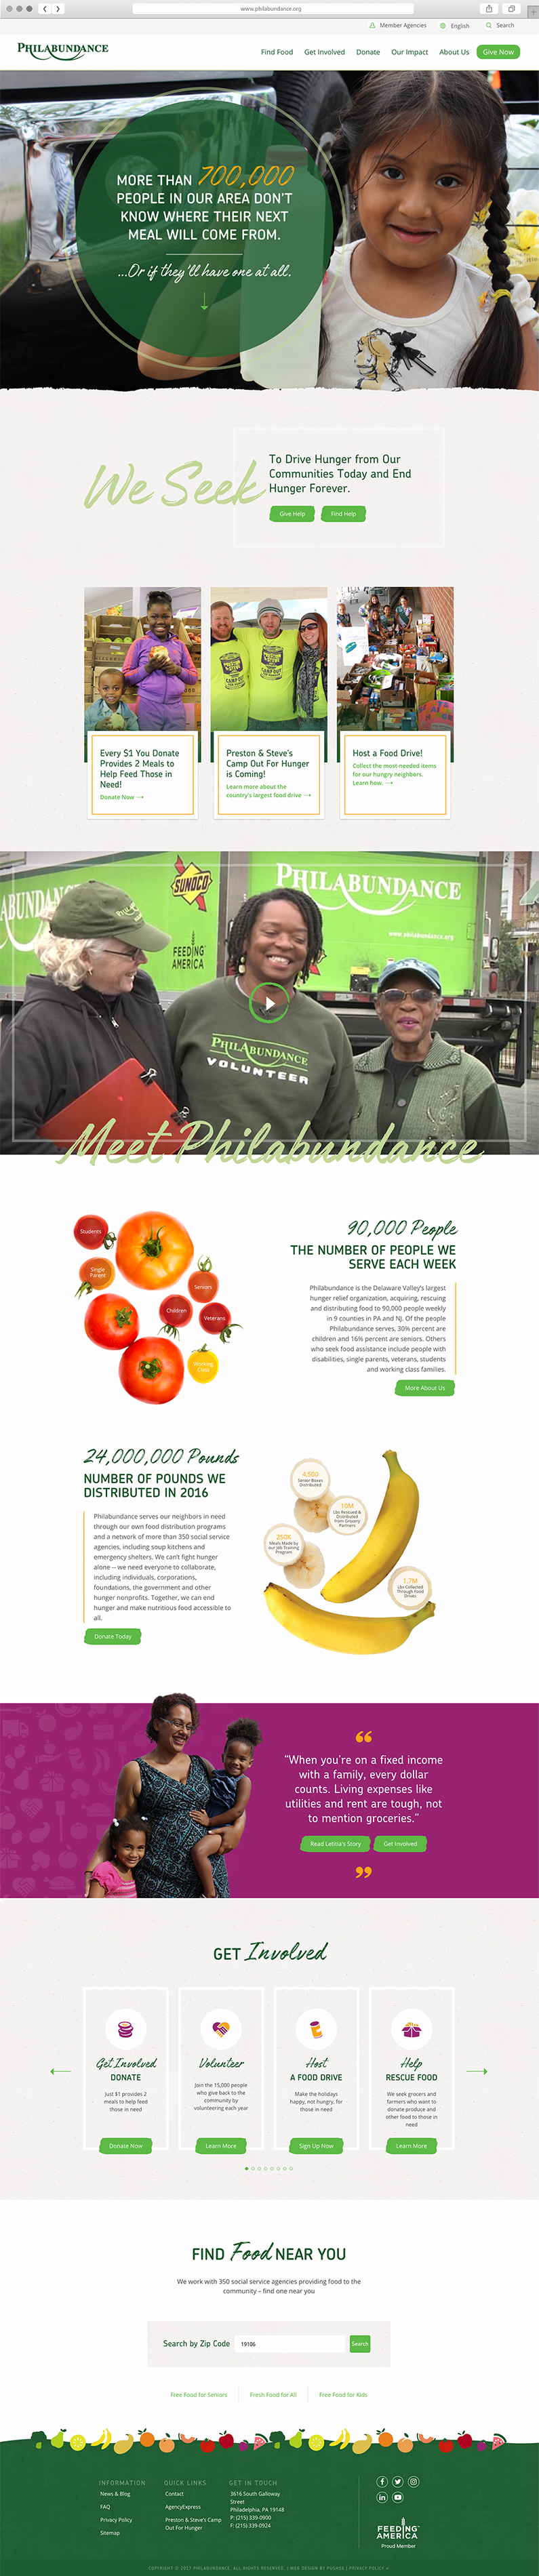 Homepage user interface design for Philabundance